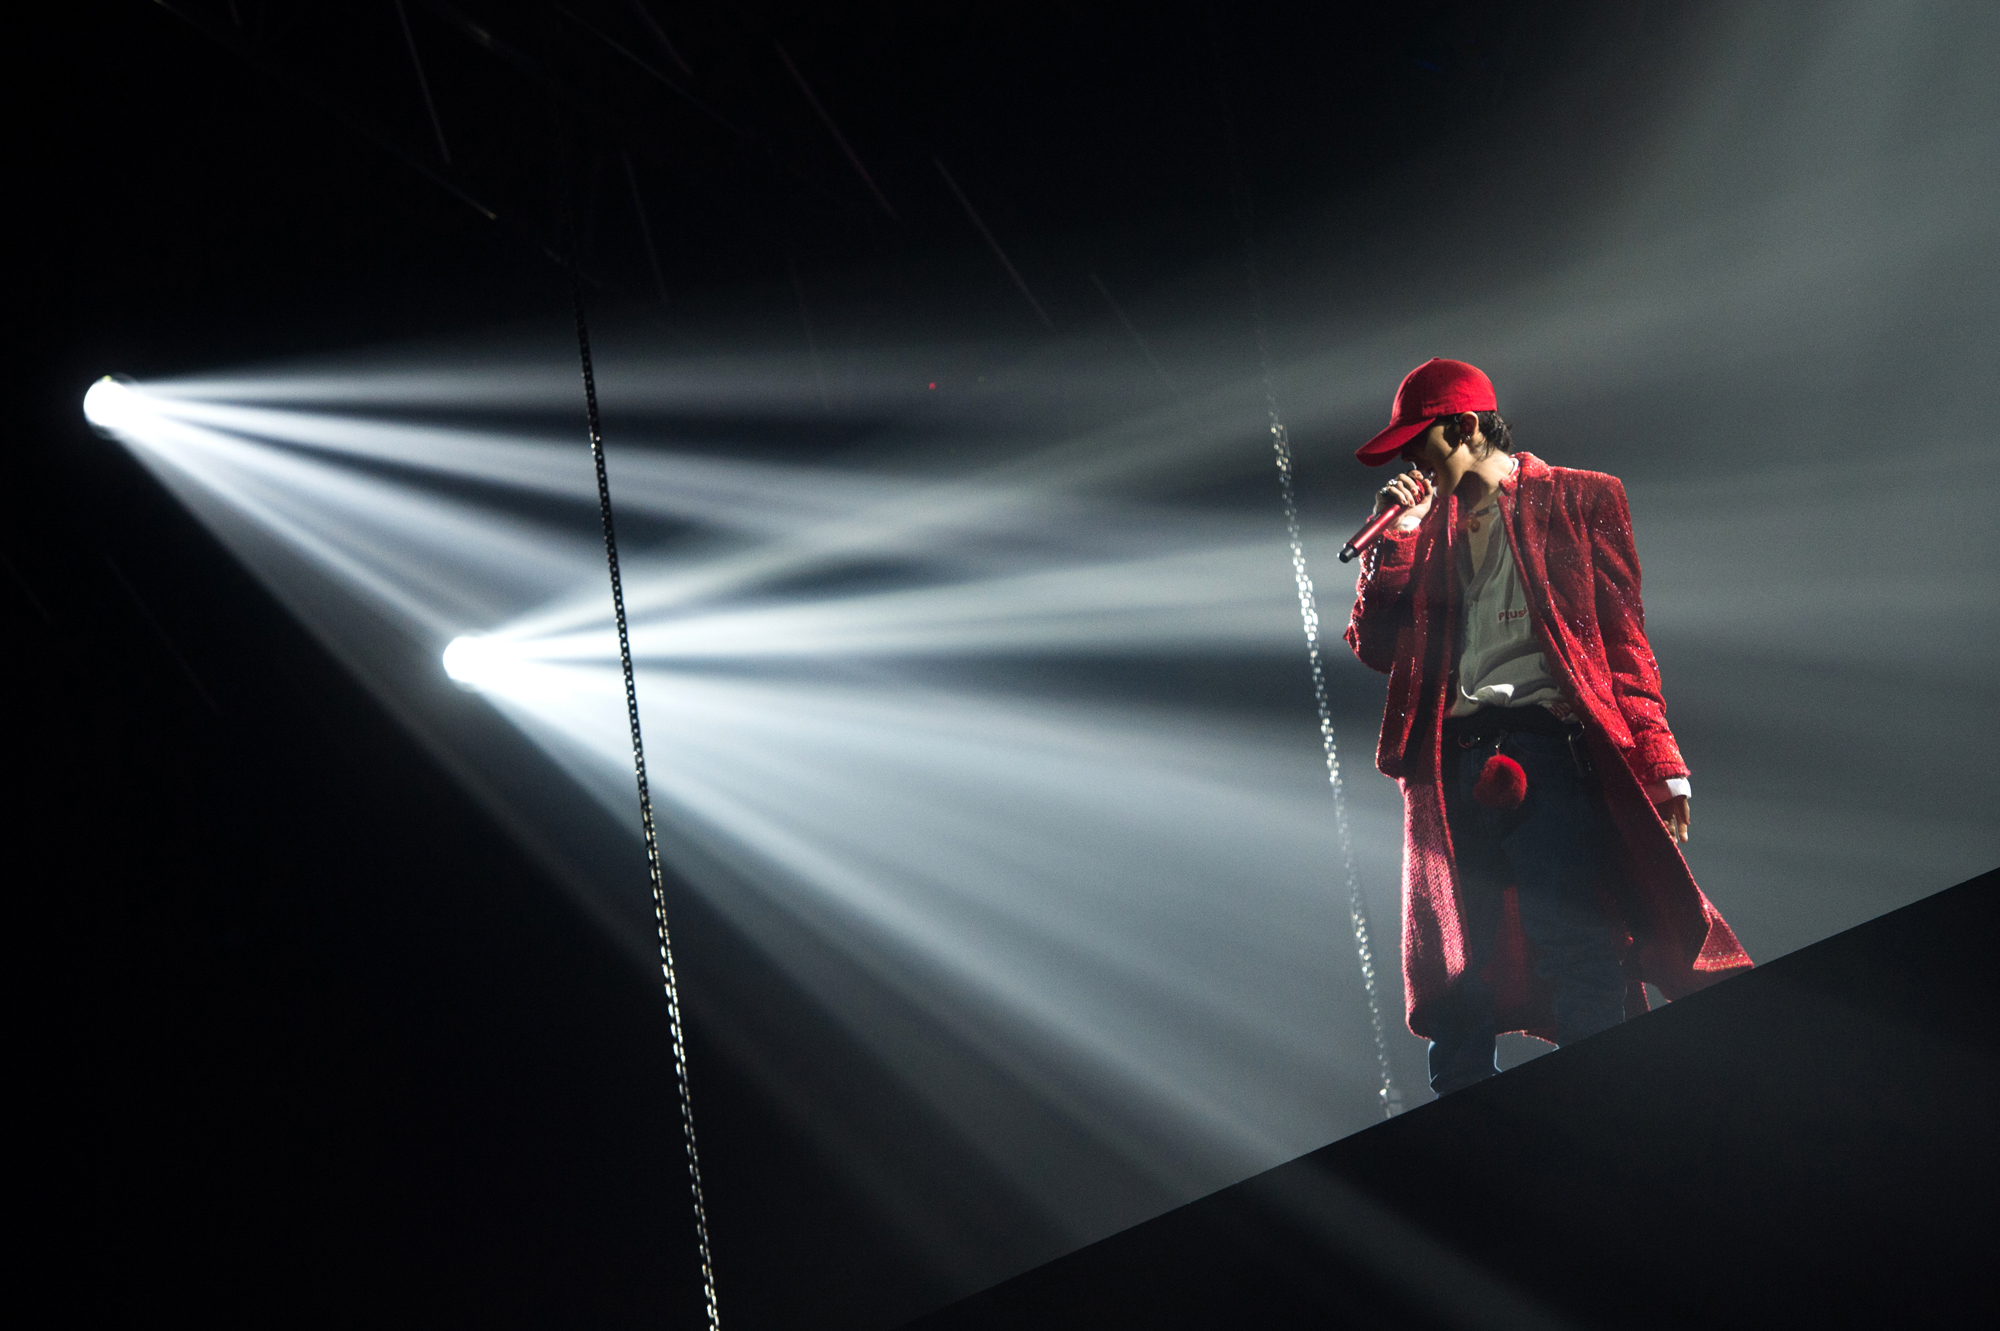 Brisbane G-DRAGON fans! Win a double pass to see the iconic Korean artist live on stage HERE.